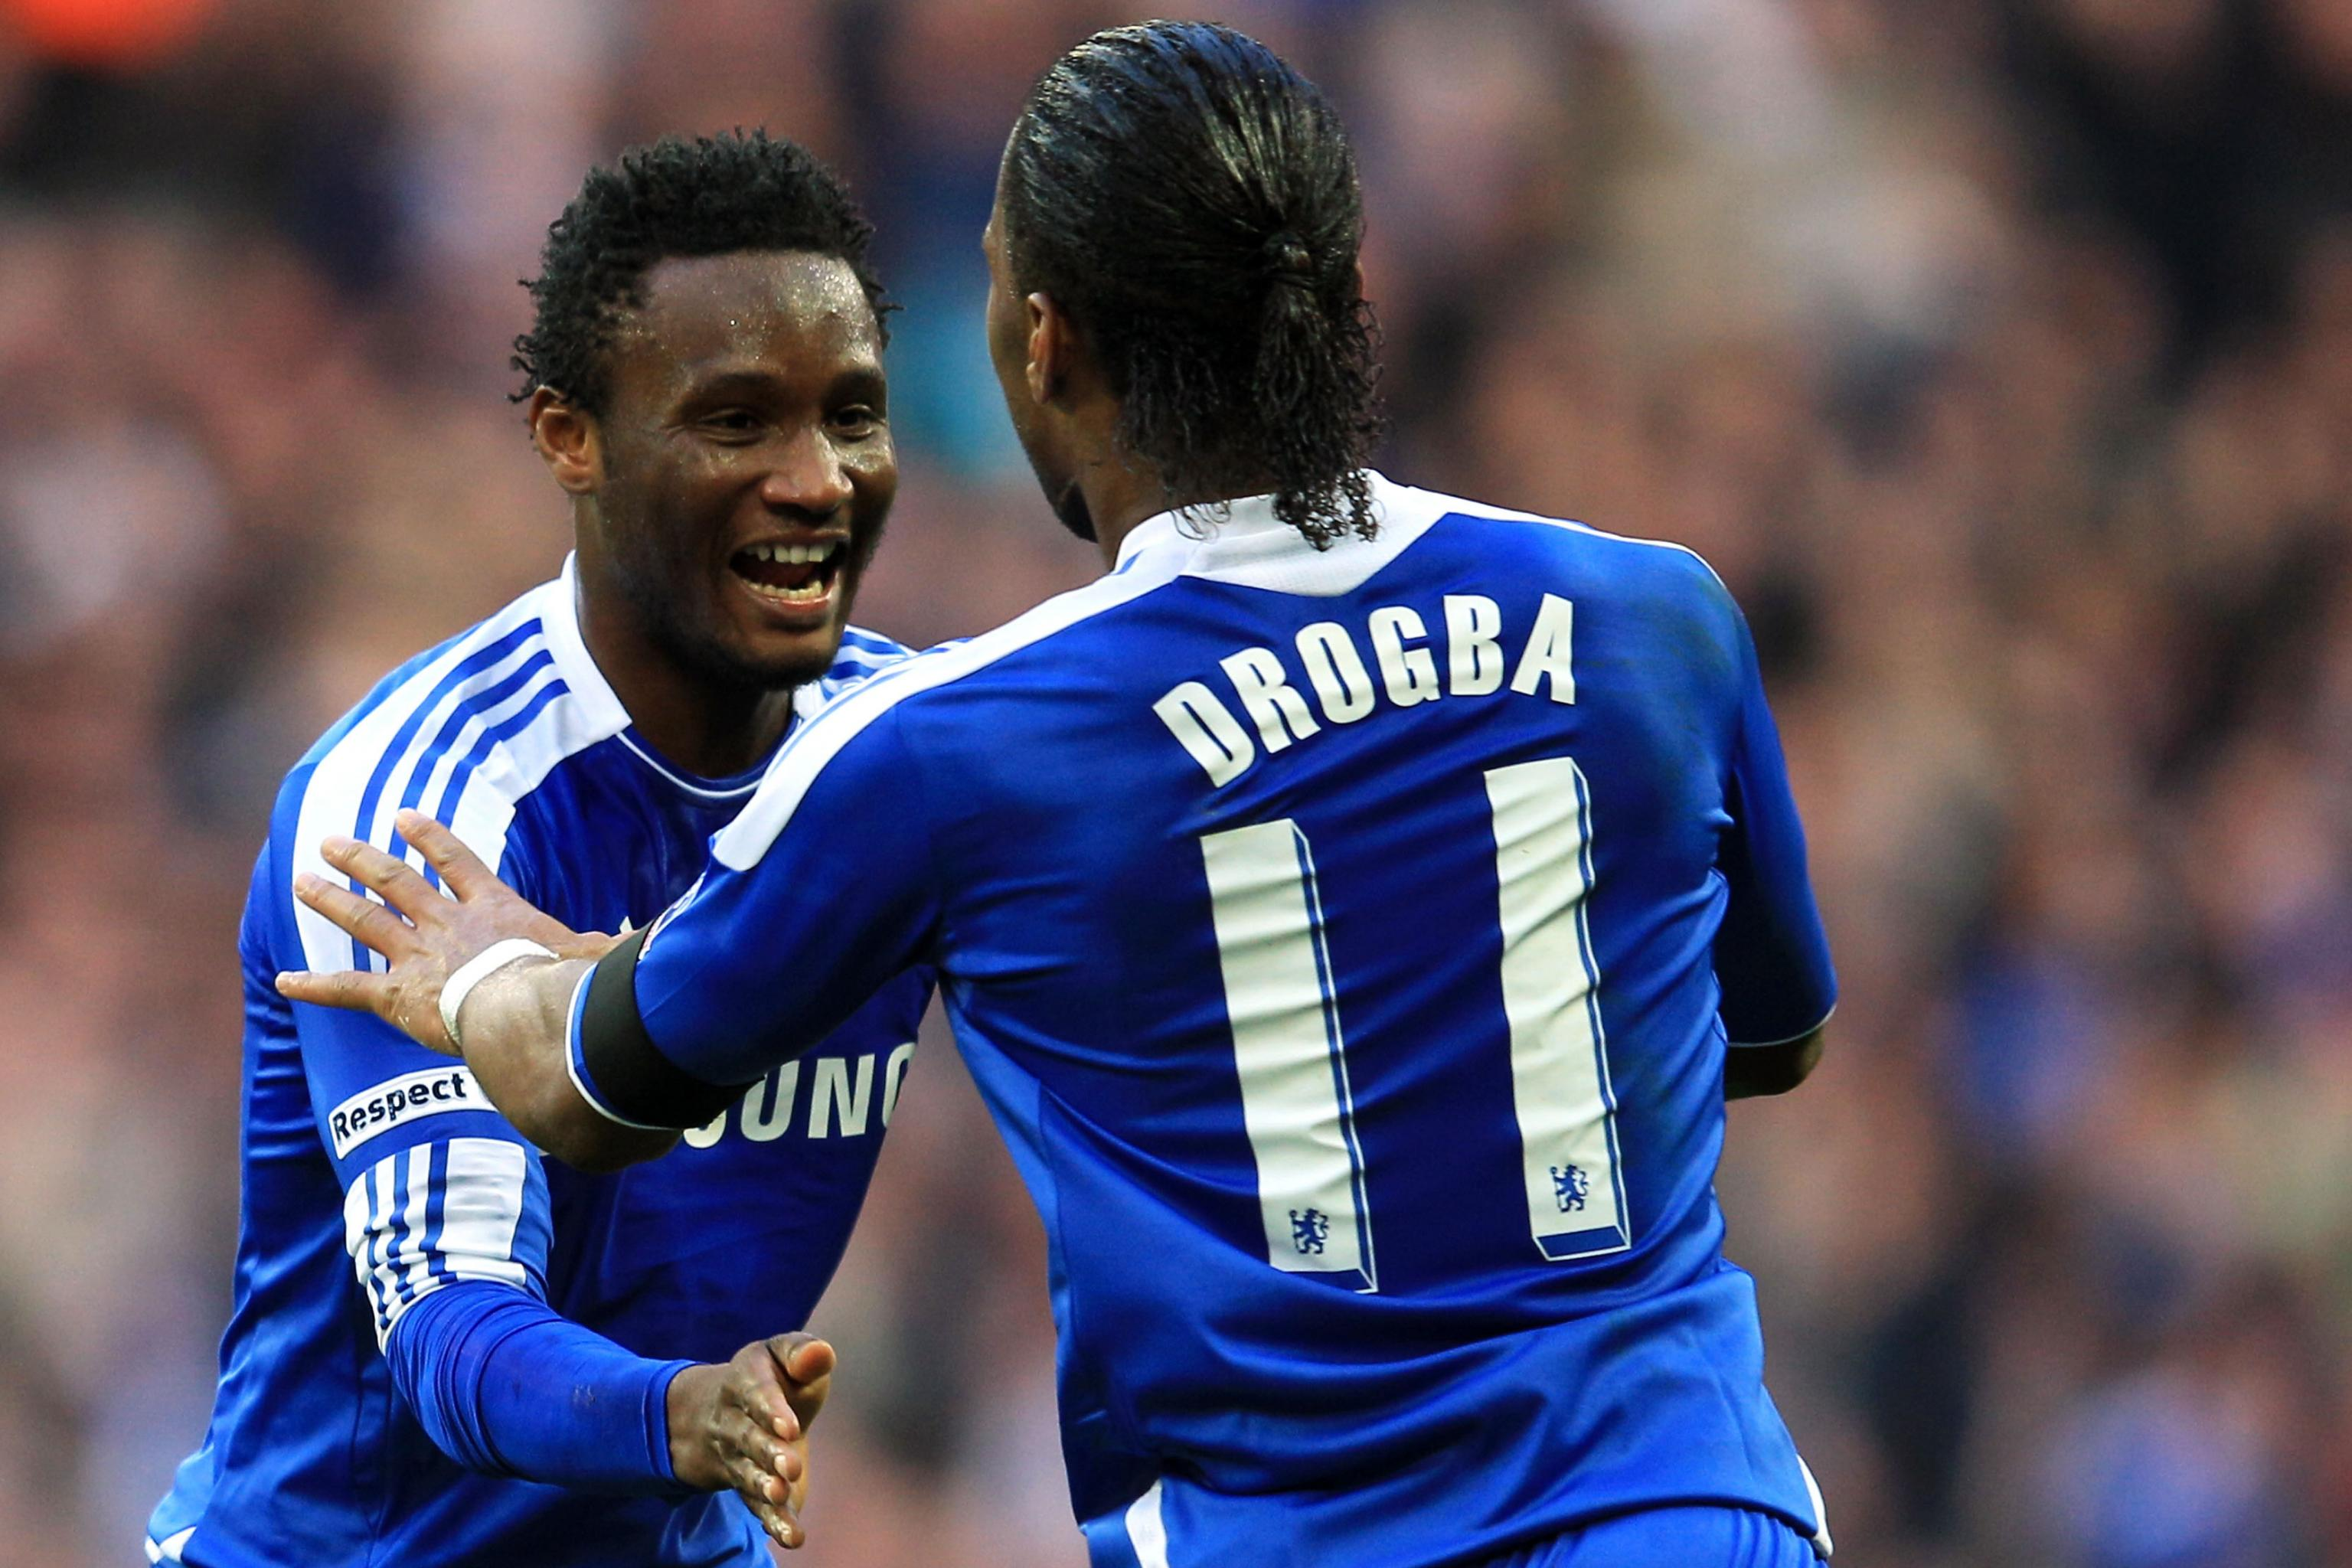 newest collection 36a90 6063a Didier Drogba Gets His No. 11 Chelsea Shirt Back from Oscar ...